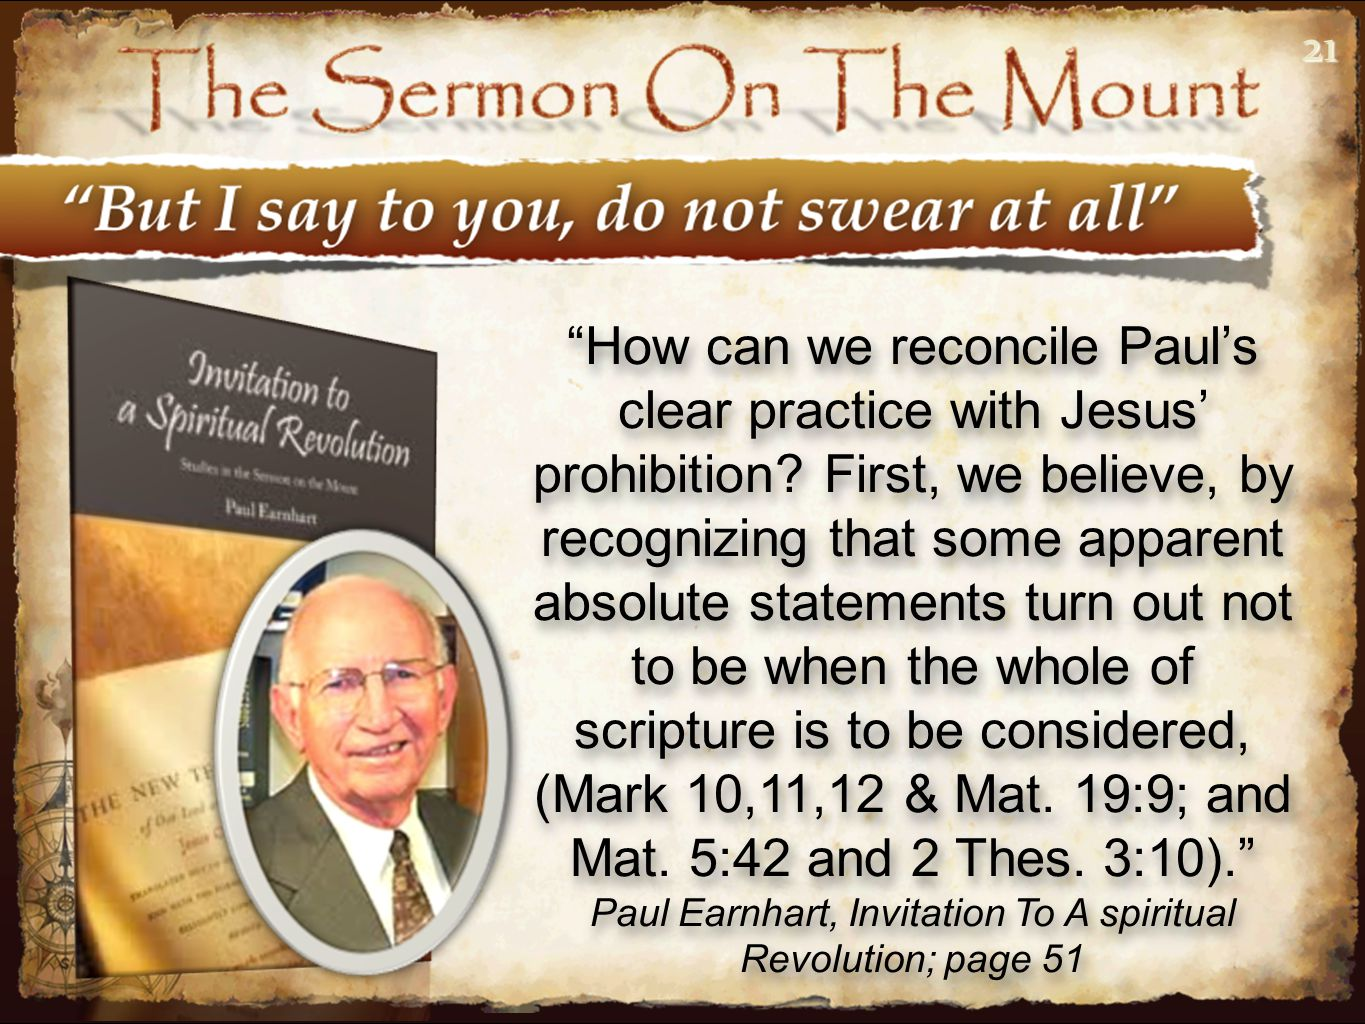 Paul Earnhart, Invitation To A spiritual Revolution; page 51